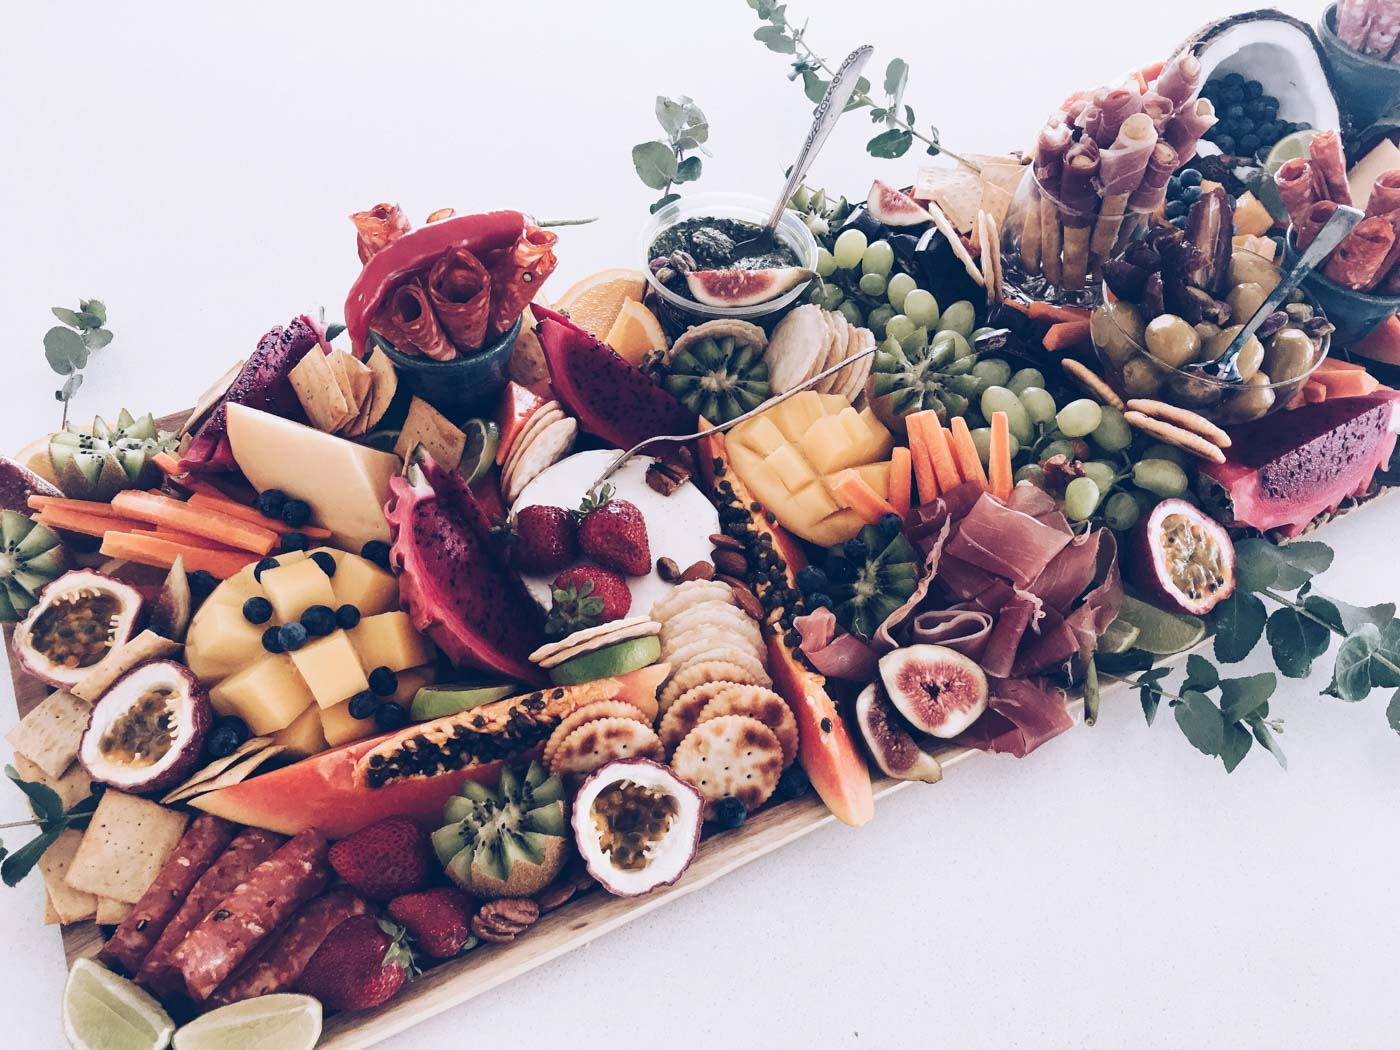 the_Collection_co_grazing_table_cairns_weddings_catering_medium_platter-3.jpg